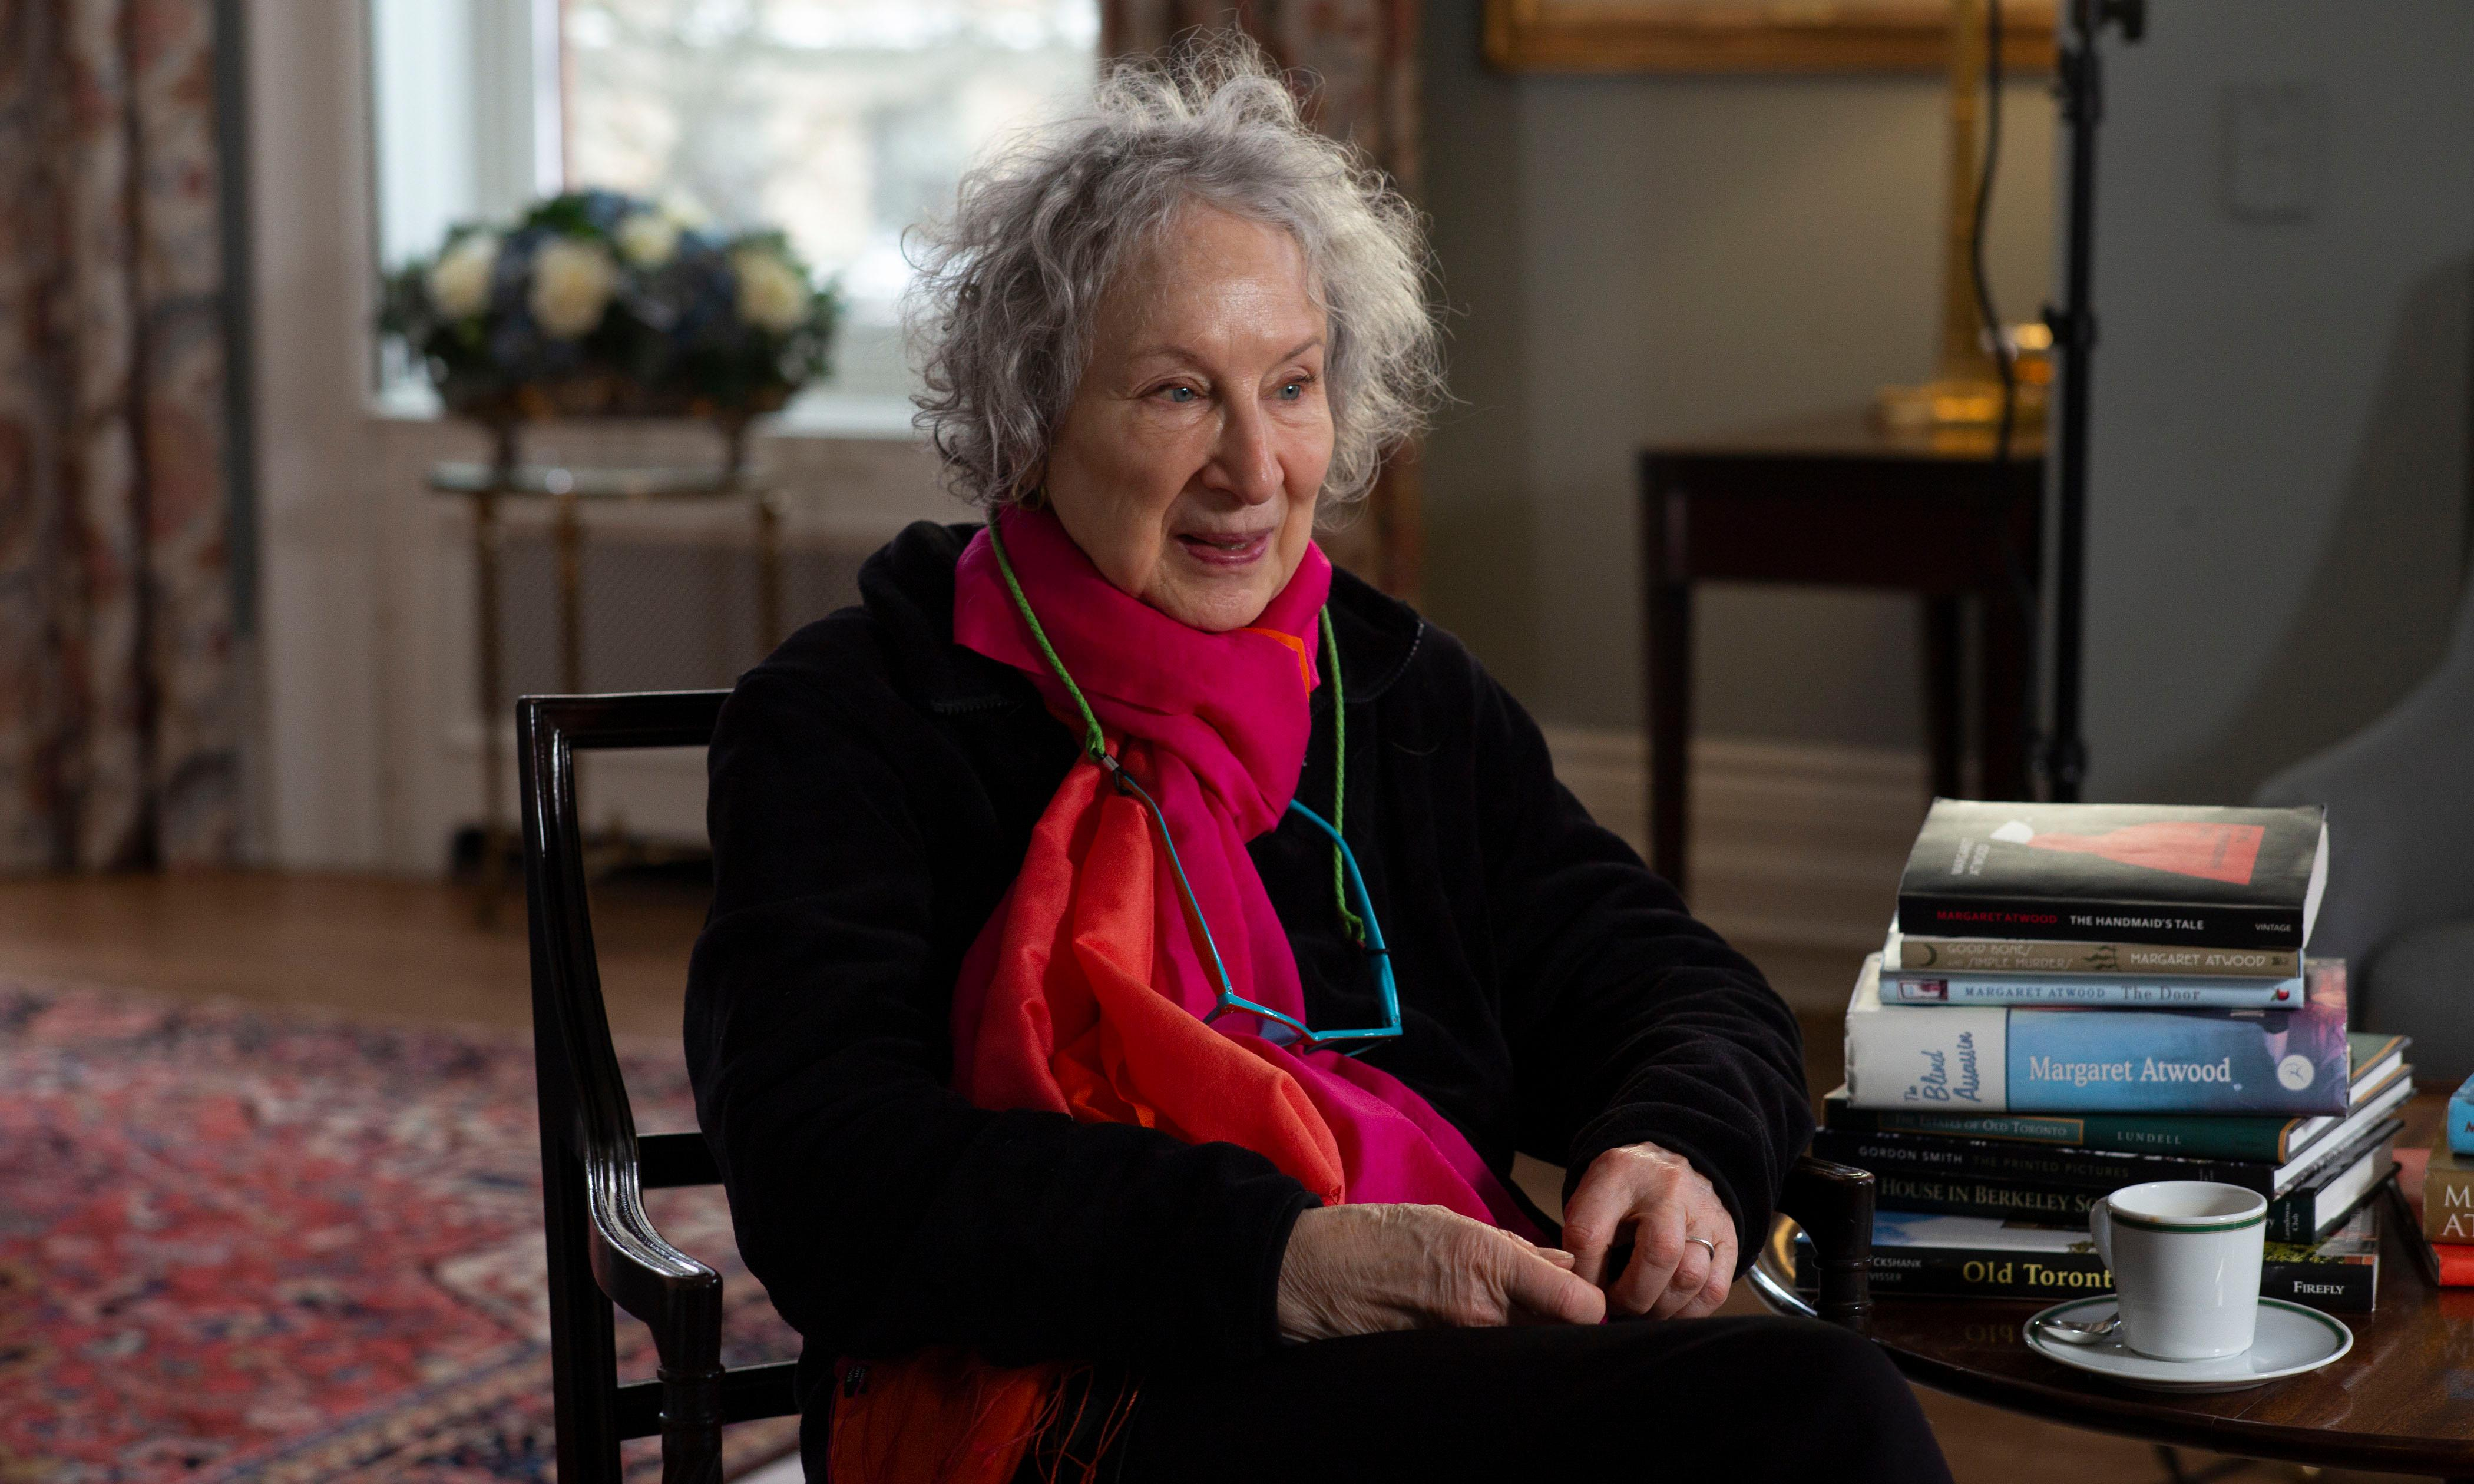 TV tonight: the extraordinary world of Margaret Atwood